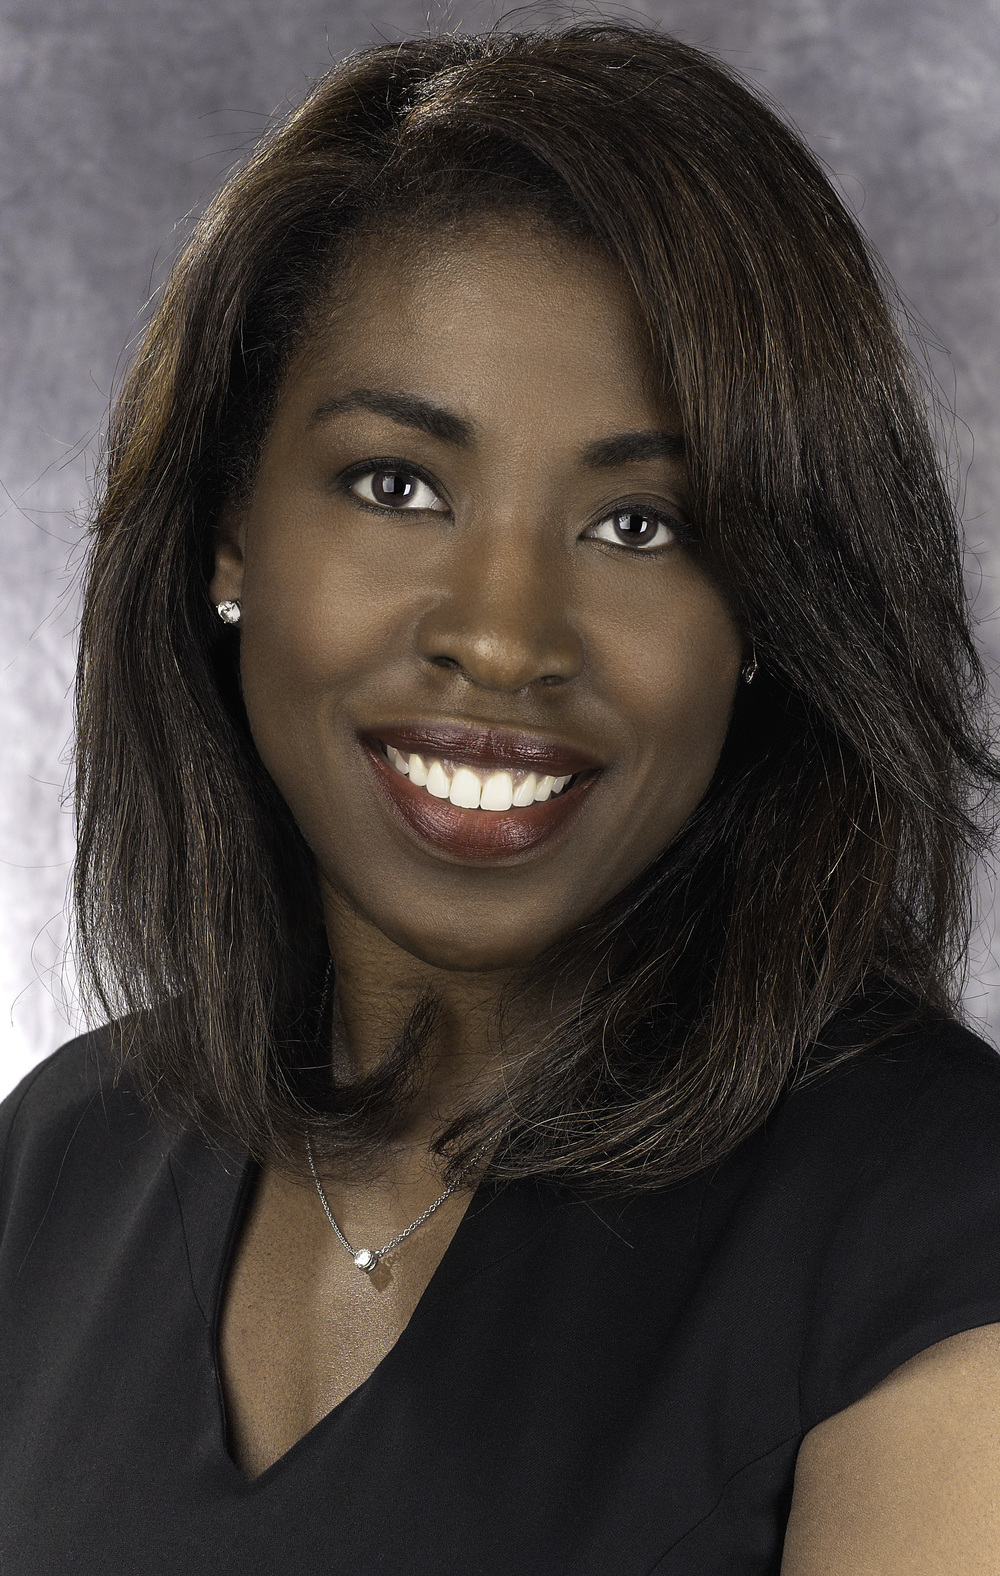 Shawn Outler, Senior Vice President of Weddings, Gifts, and Multicultural Business Development, Macy's, Inc.